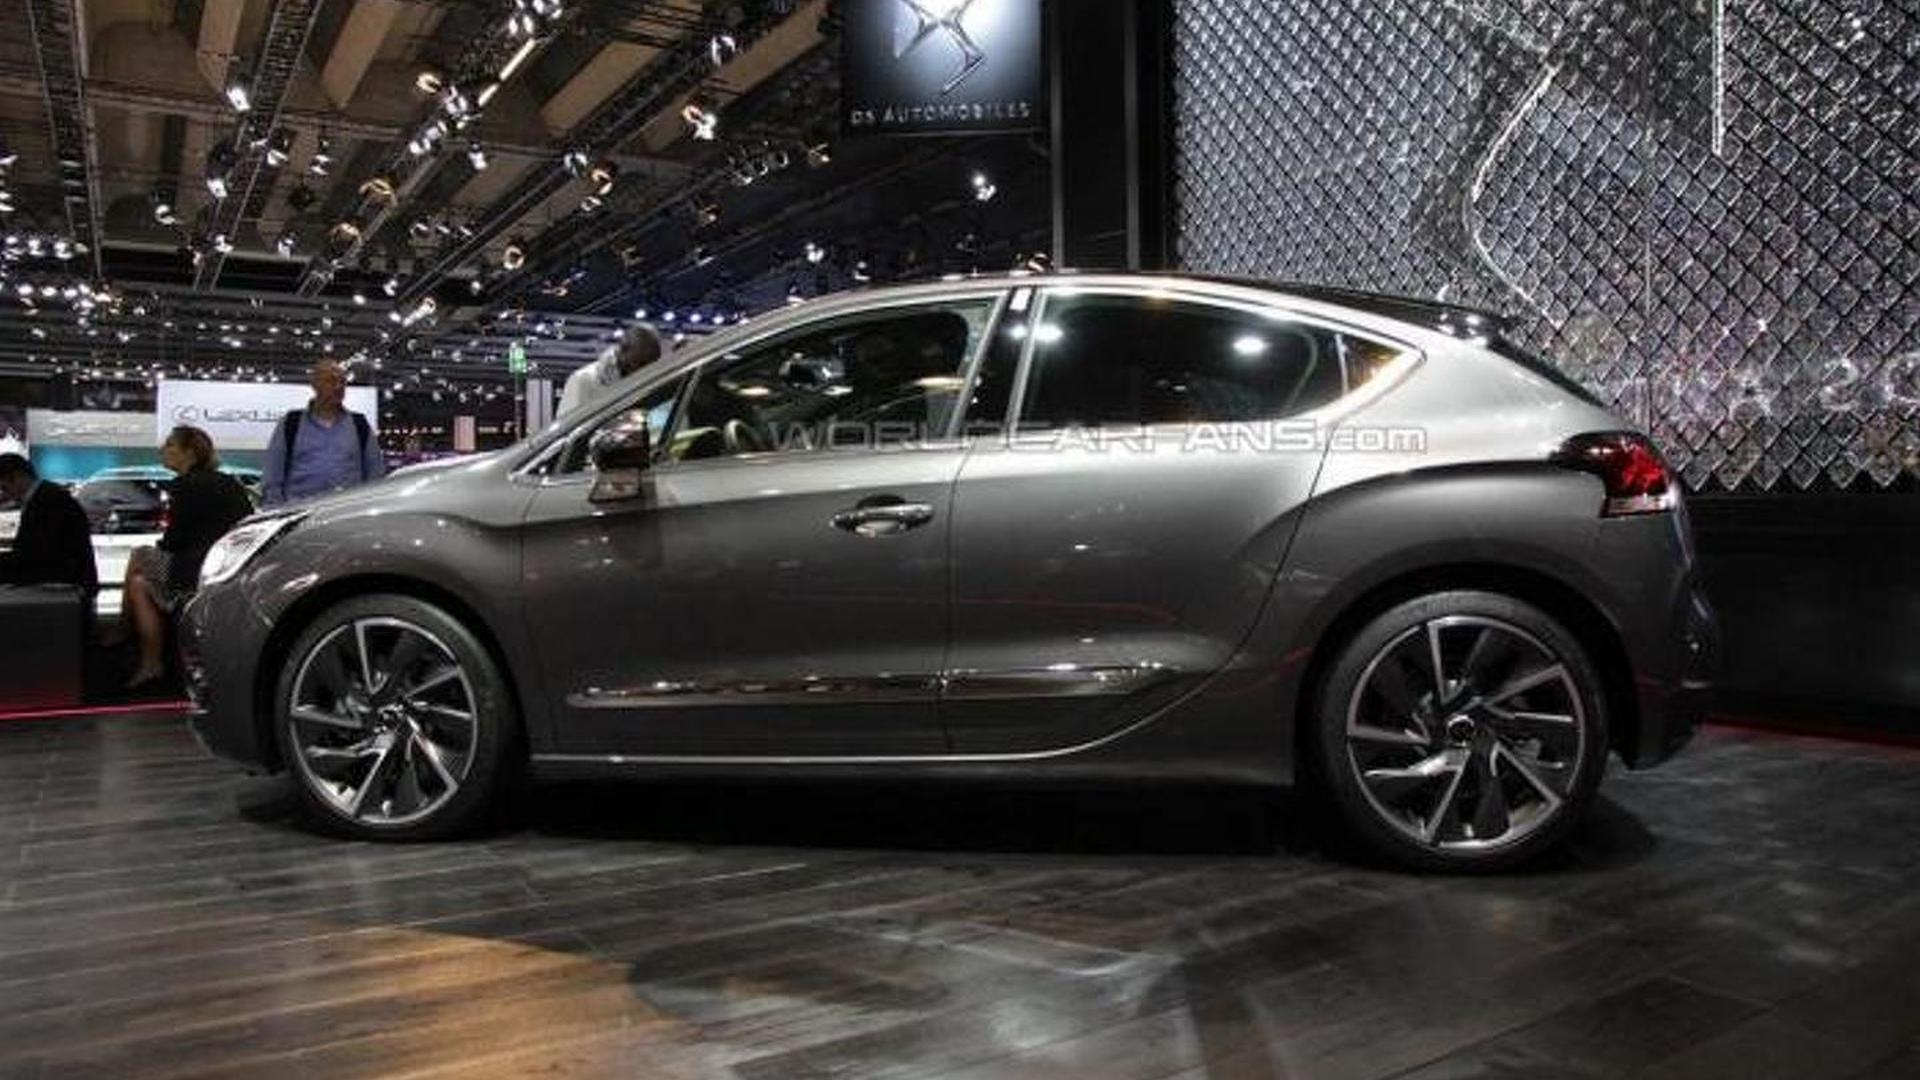 DS 4 arrives in Frankfurt together with Crossback version and new concept